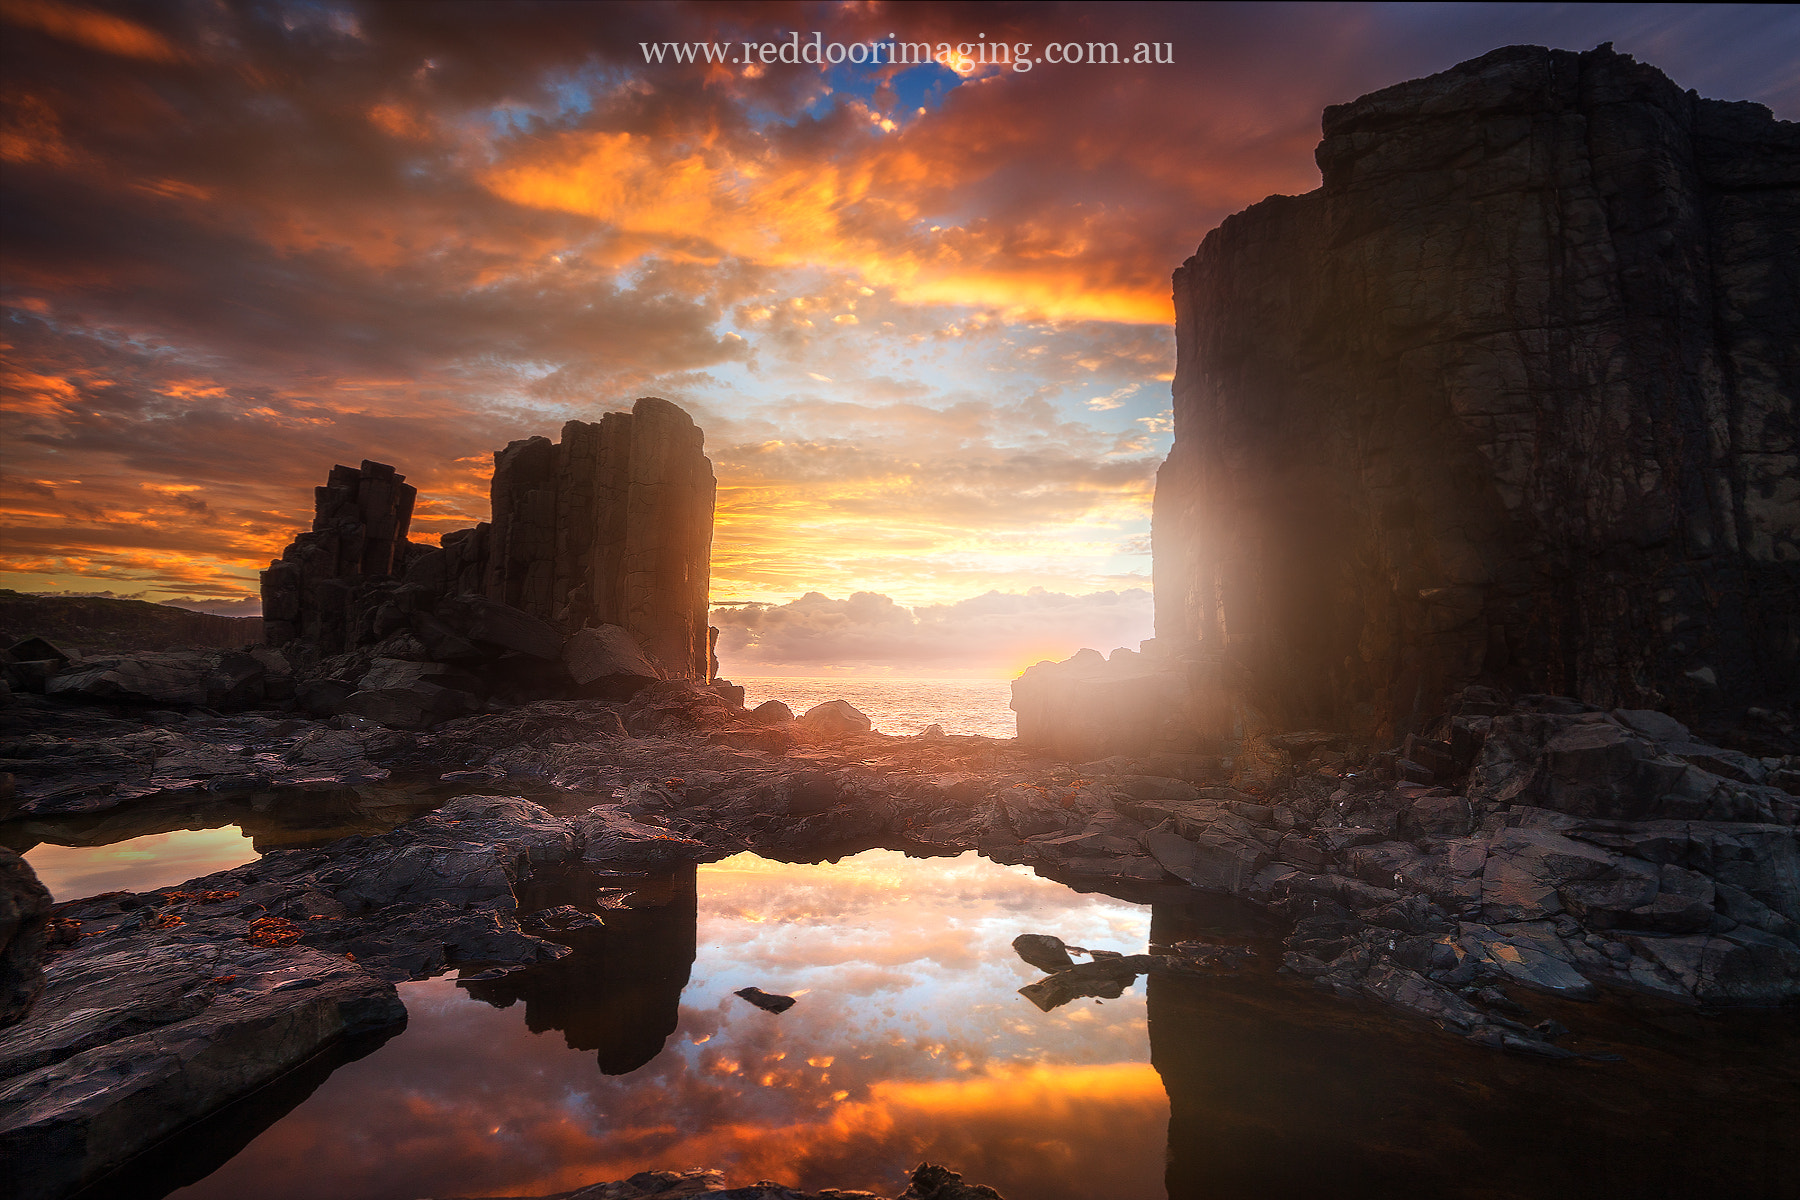 Photograph bombo bomb by Rod Trenchard on 500px